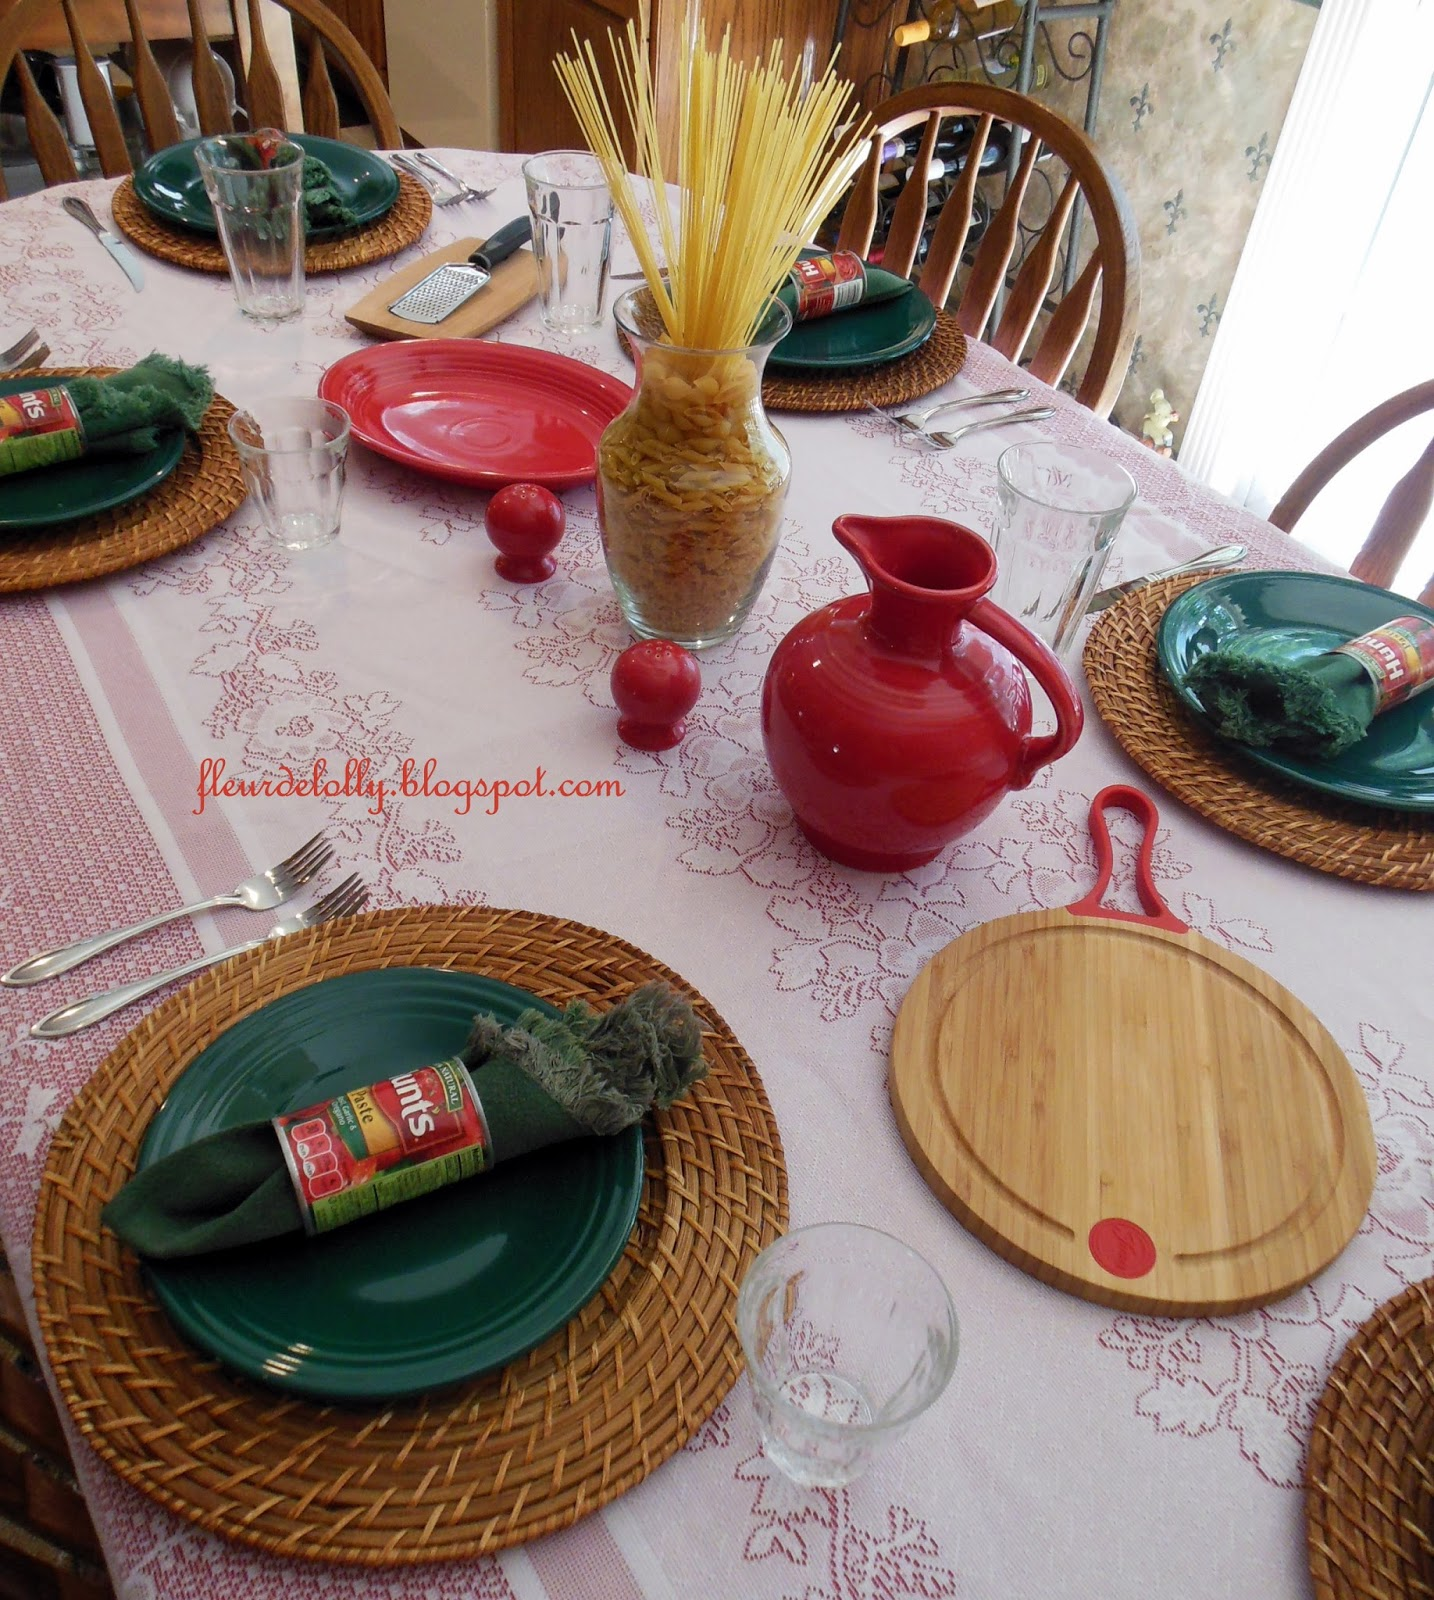 Fleur de lolly lasagna for lunch table setting Simple table setting for lunch